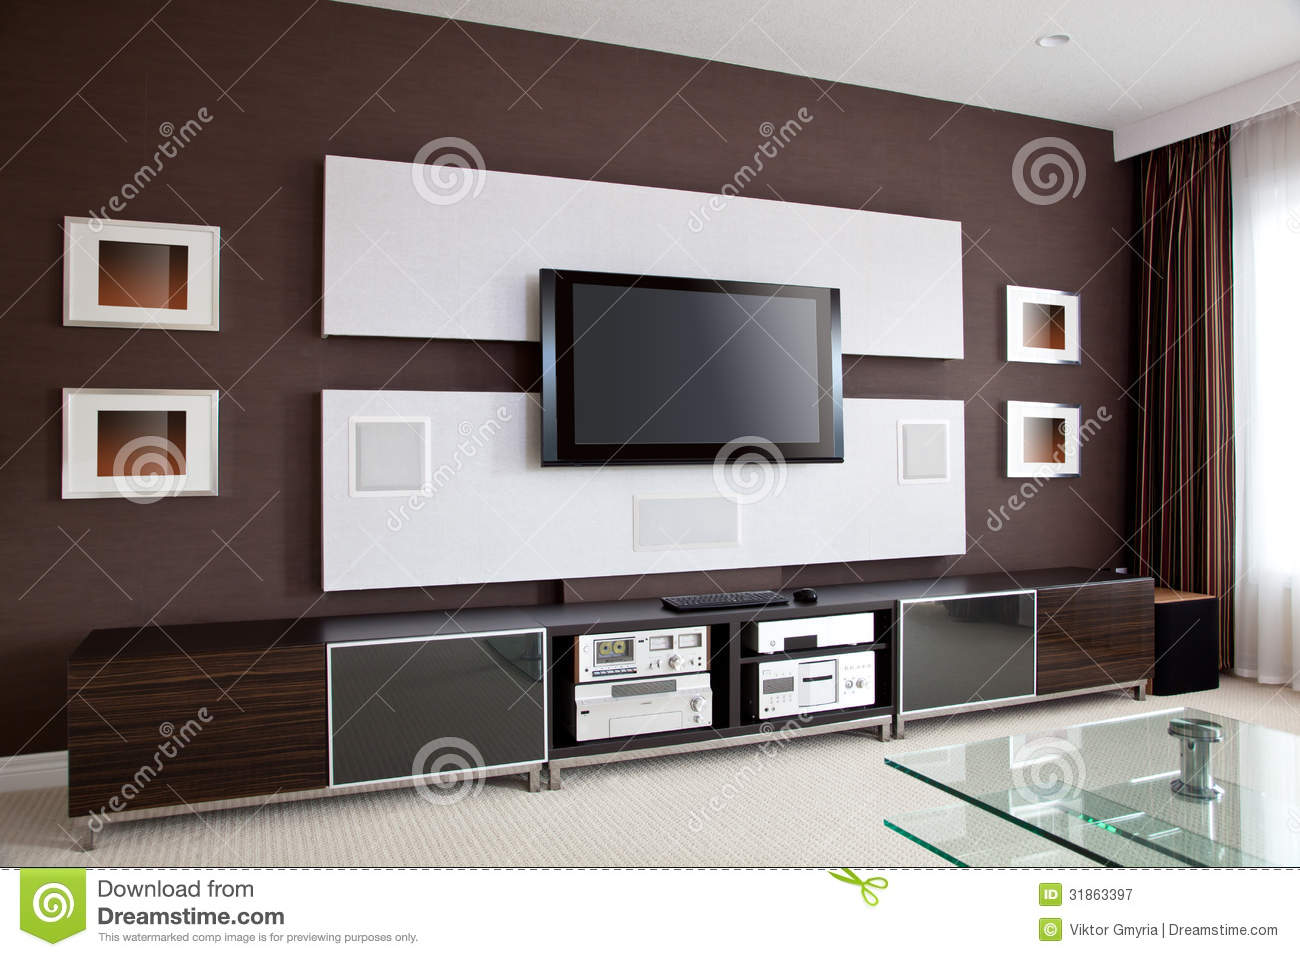 Modern Home Theater Room Interior With Flat Screen Tv Stock Image Image Of Furnished Furniture 31863397